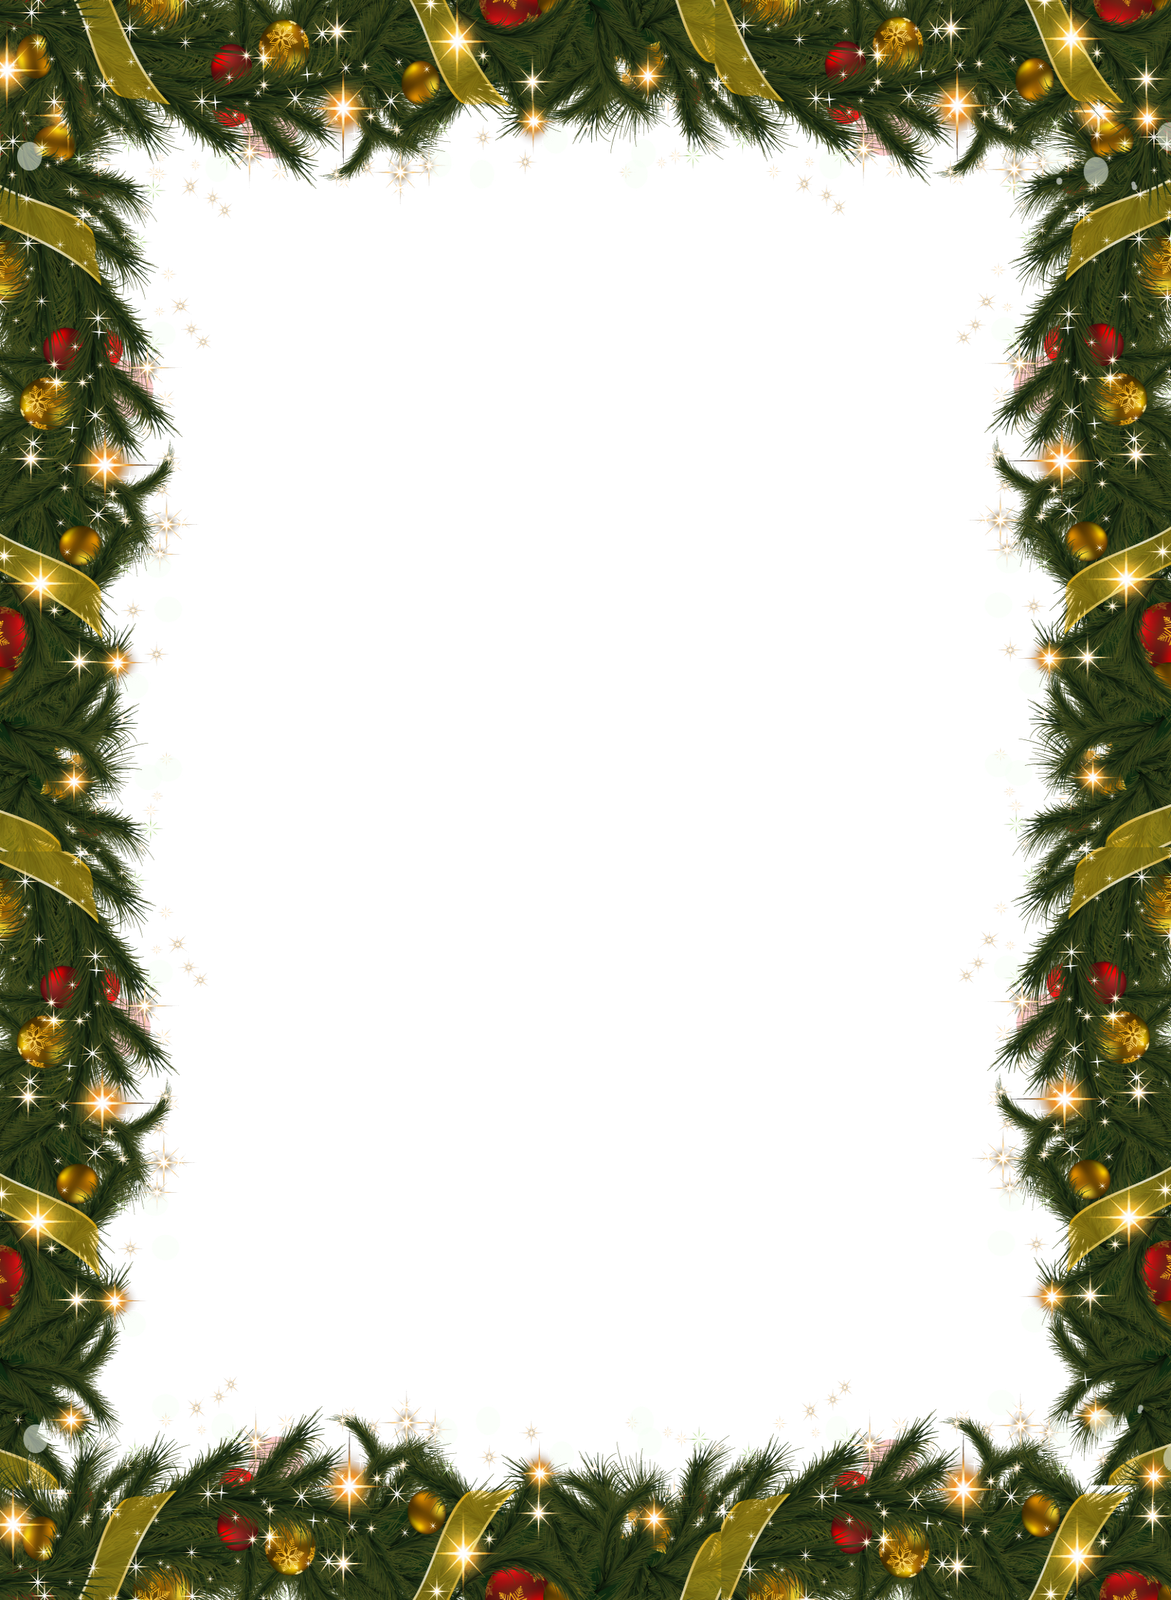 Holiday border frame png. Lots of free clipart